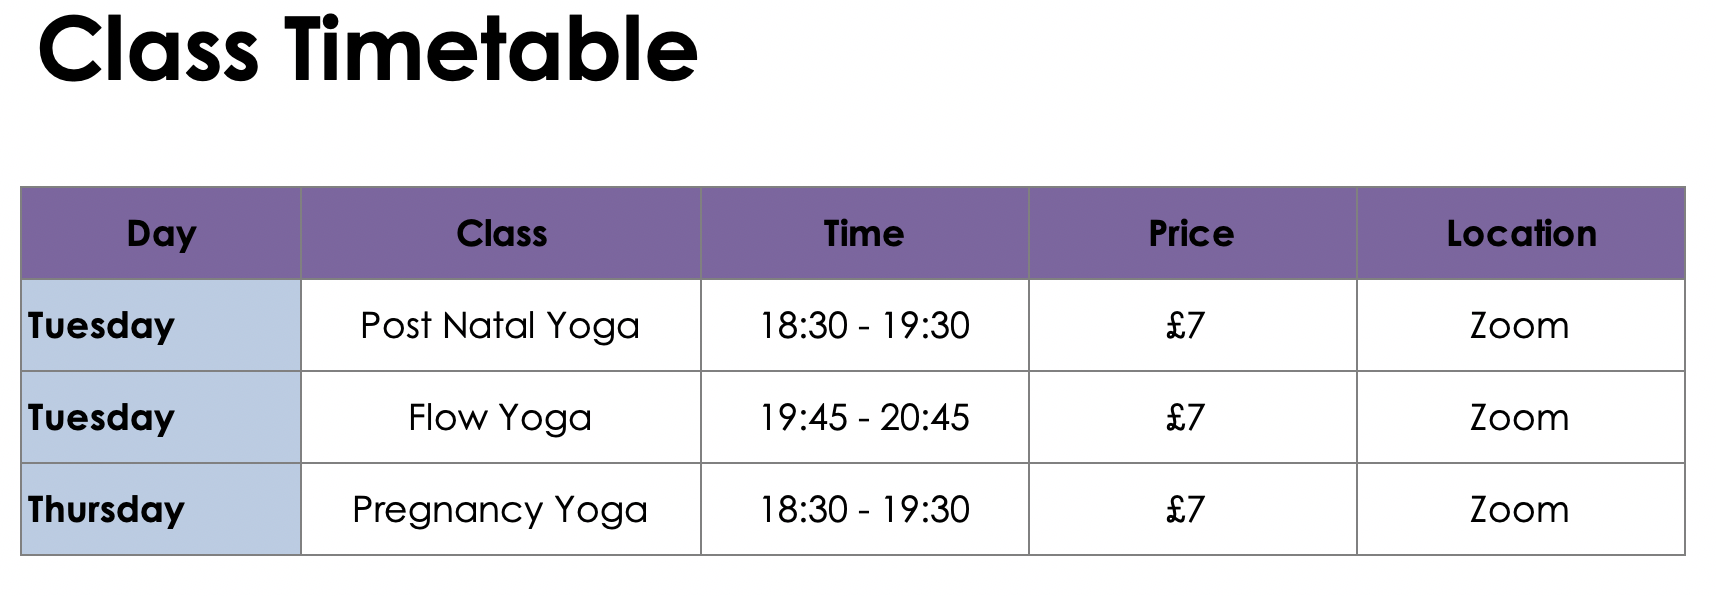 zoom timetable